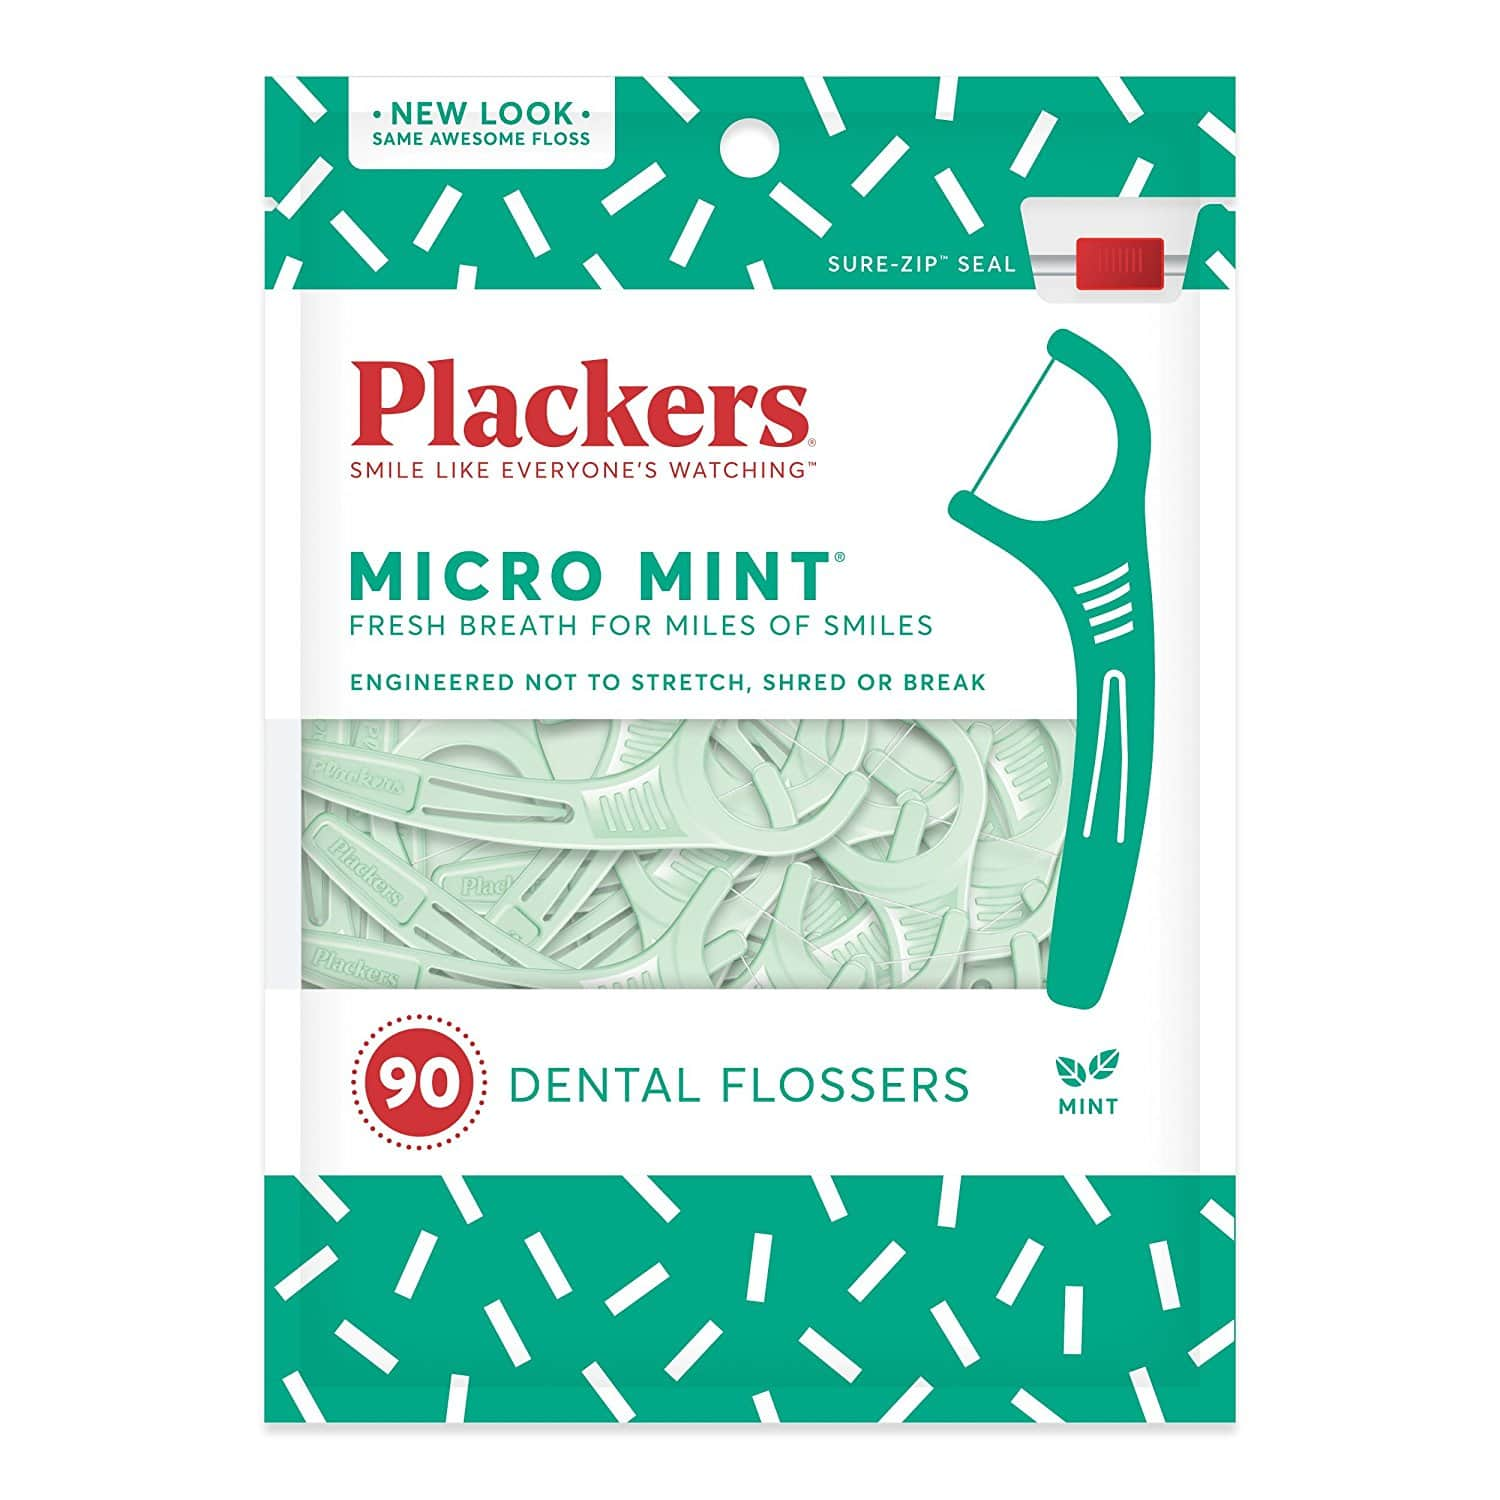 6-Pack of 90-Count Plackers Micro Mint Flossers $9.99 (5%) or $8.49 AC w/ S&S + Free S/H